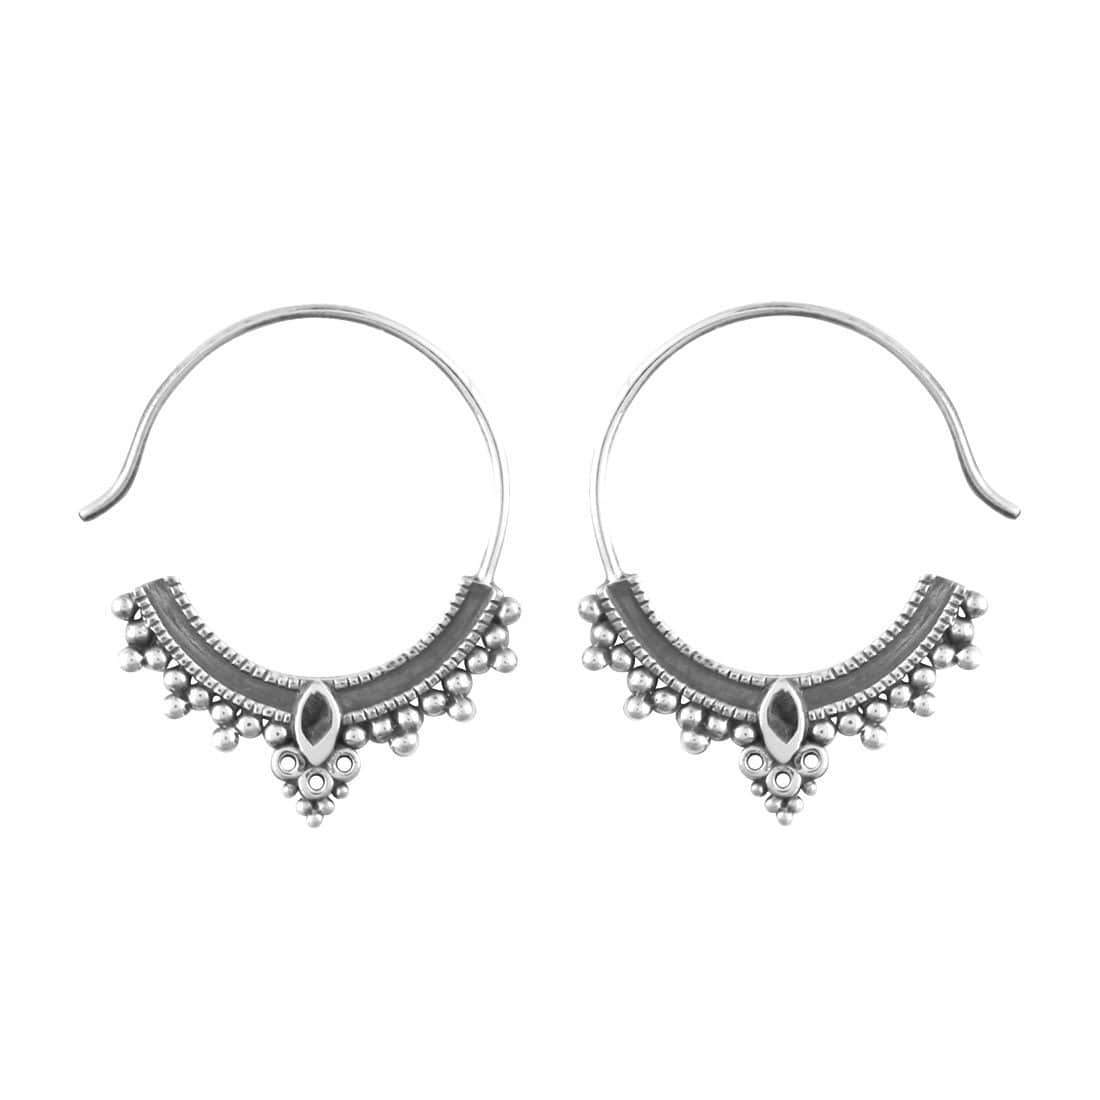 Midsummer Star Earrings Periyar Hoops